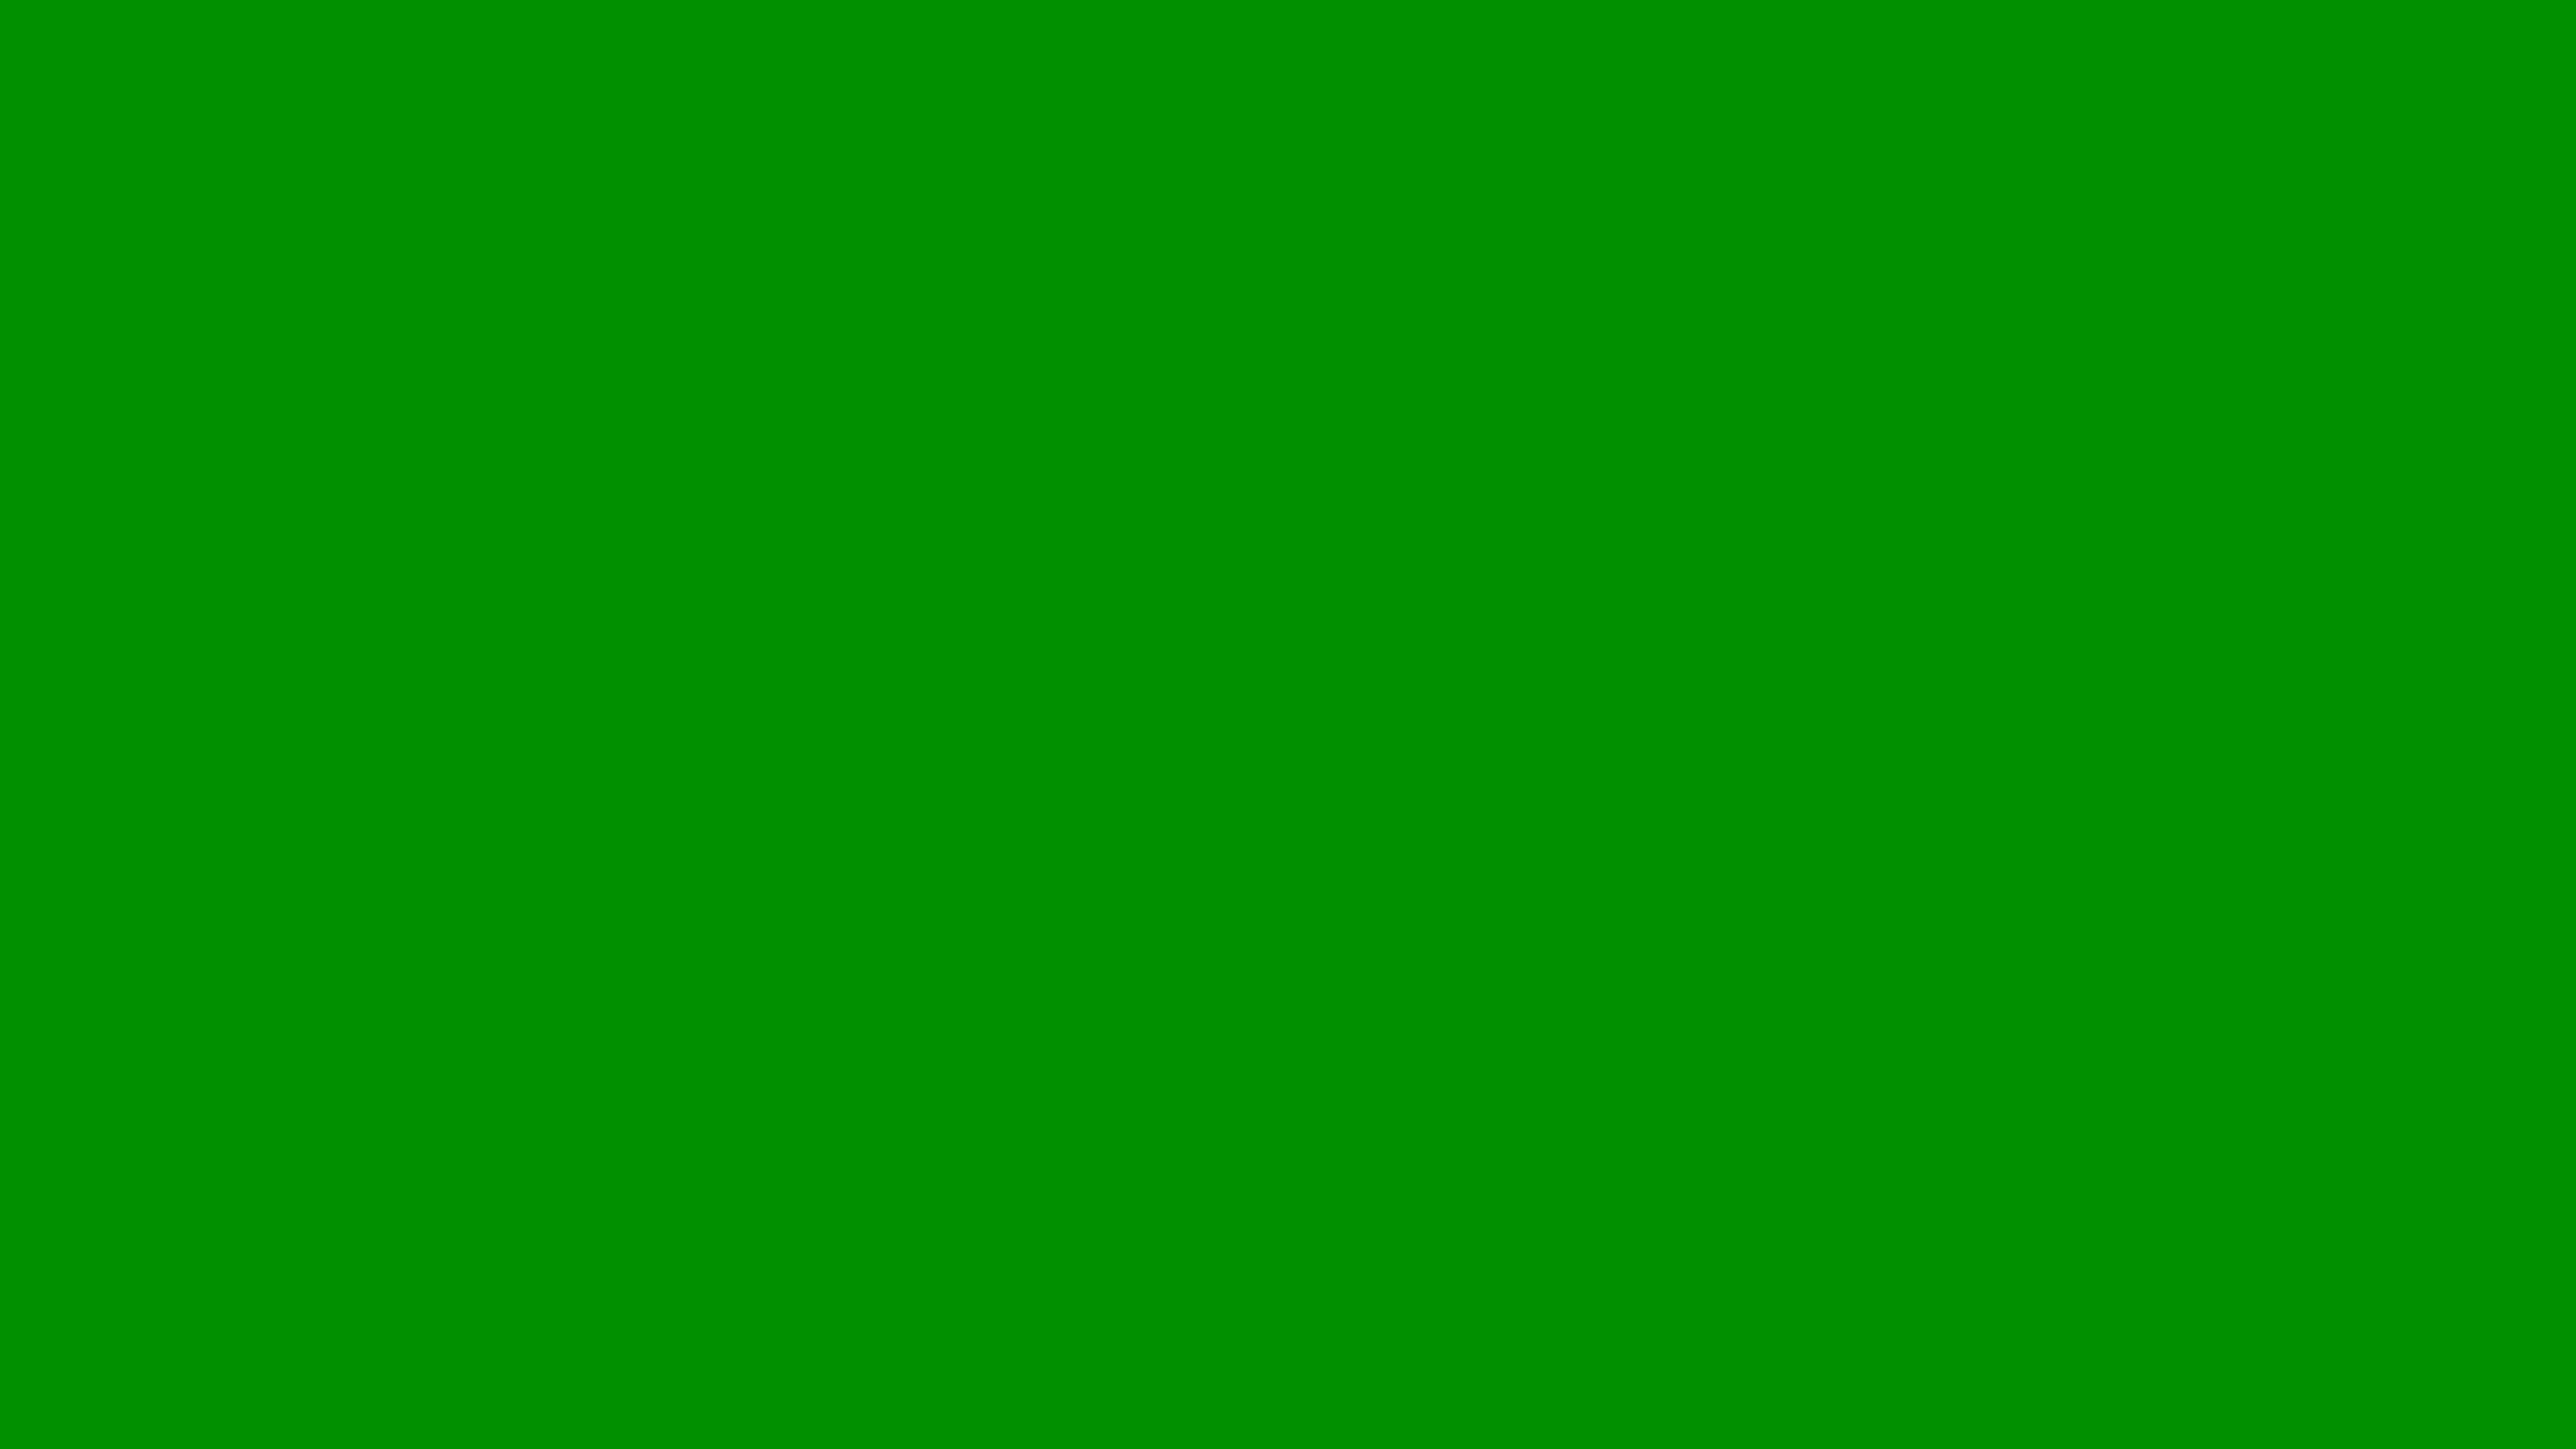 3840x2160 Islamic Green Solid Color Background